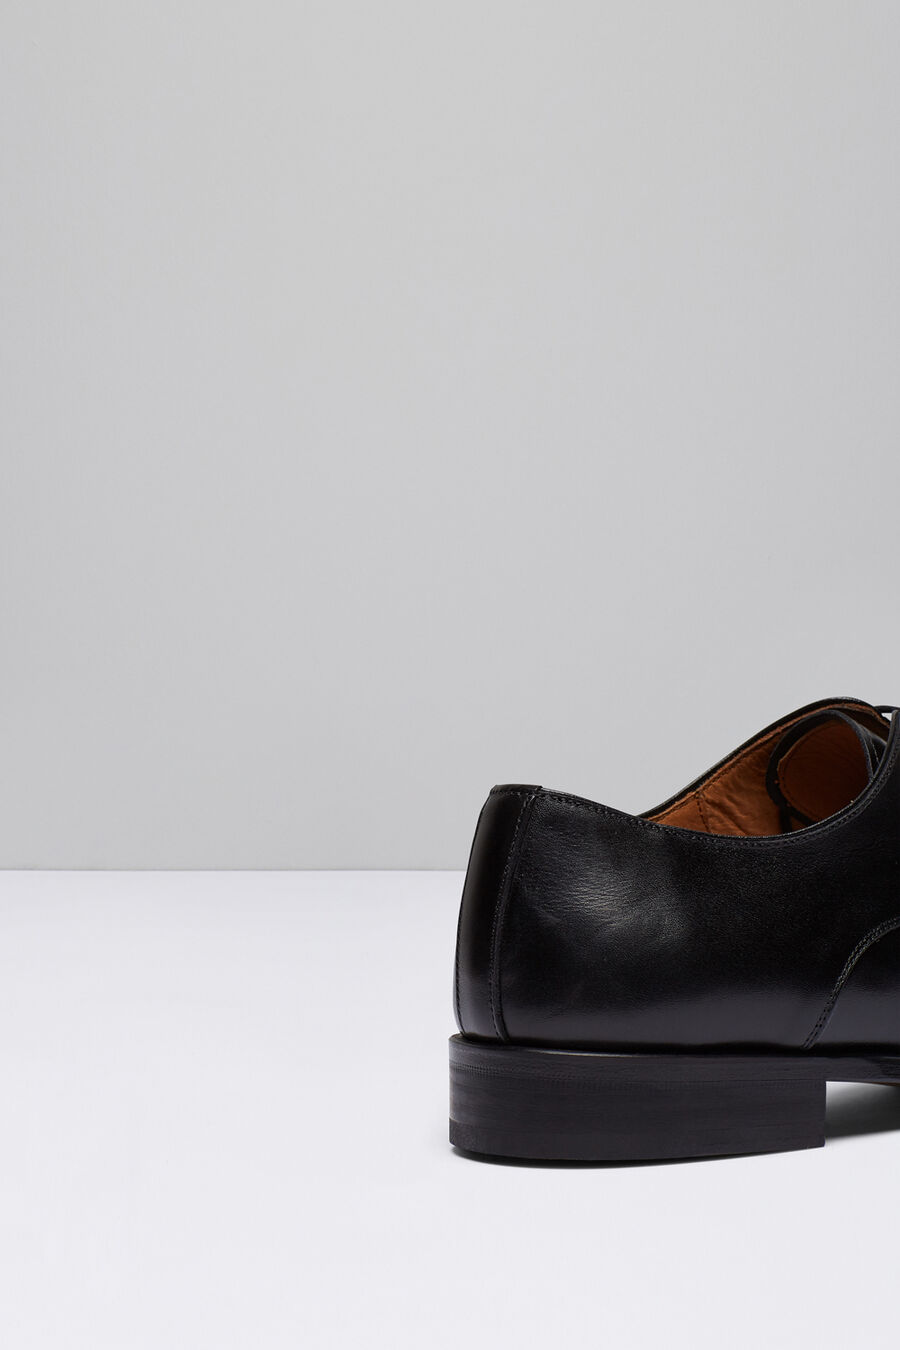 Blucher shoes with punched toe